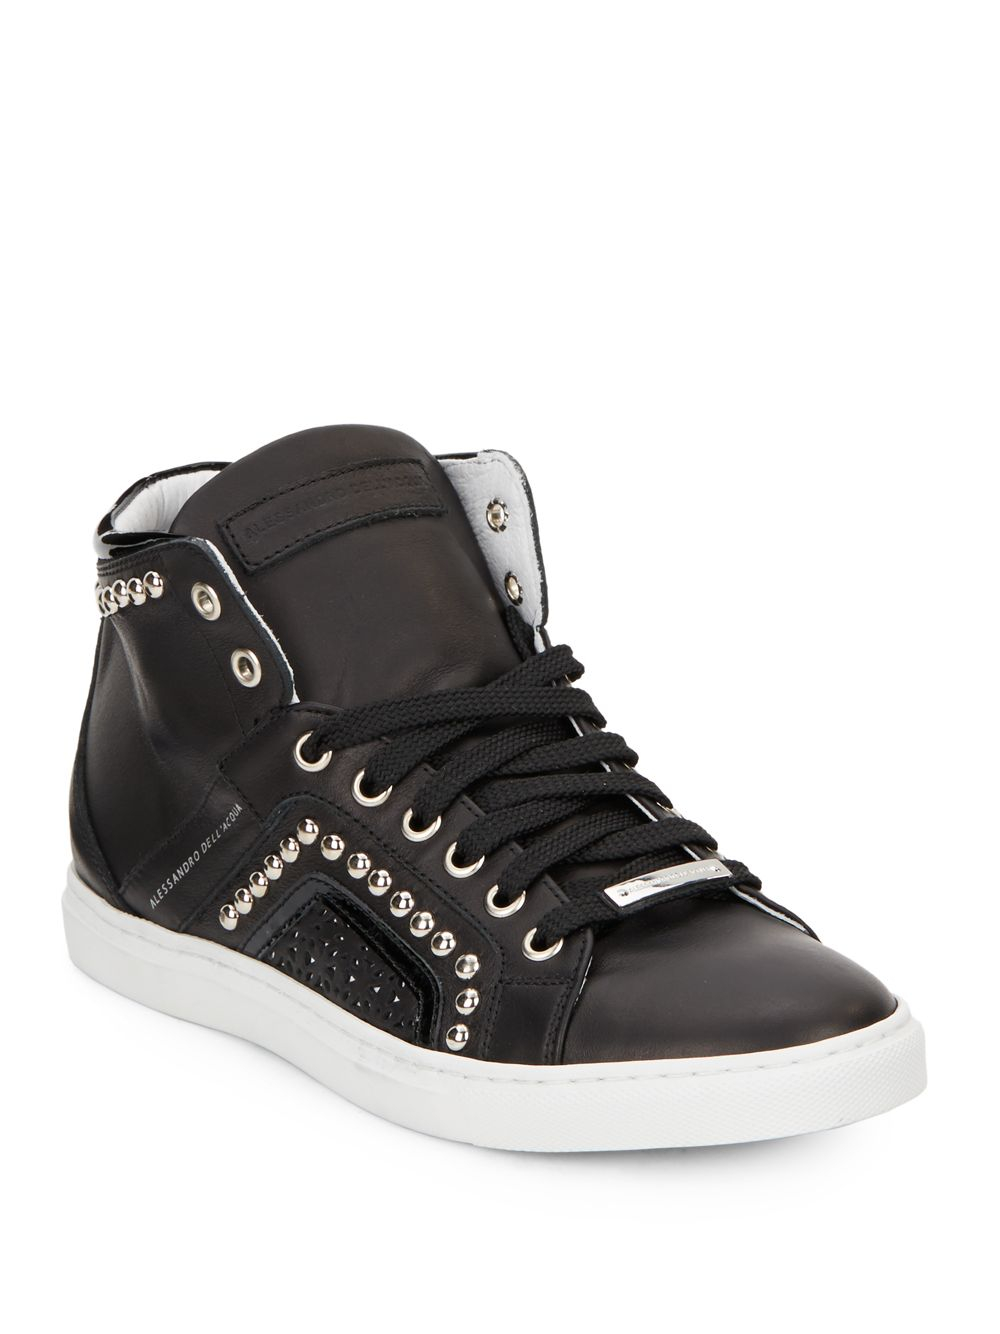 Alessandro Dell Acqua Studded High Top Leather Sneakers In border=